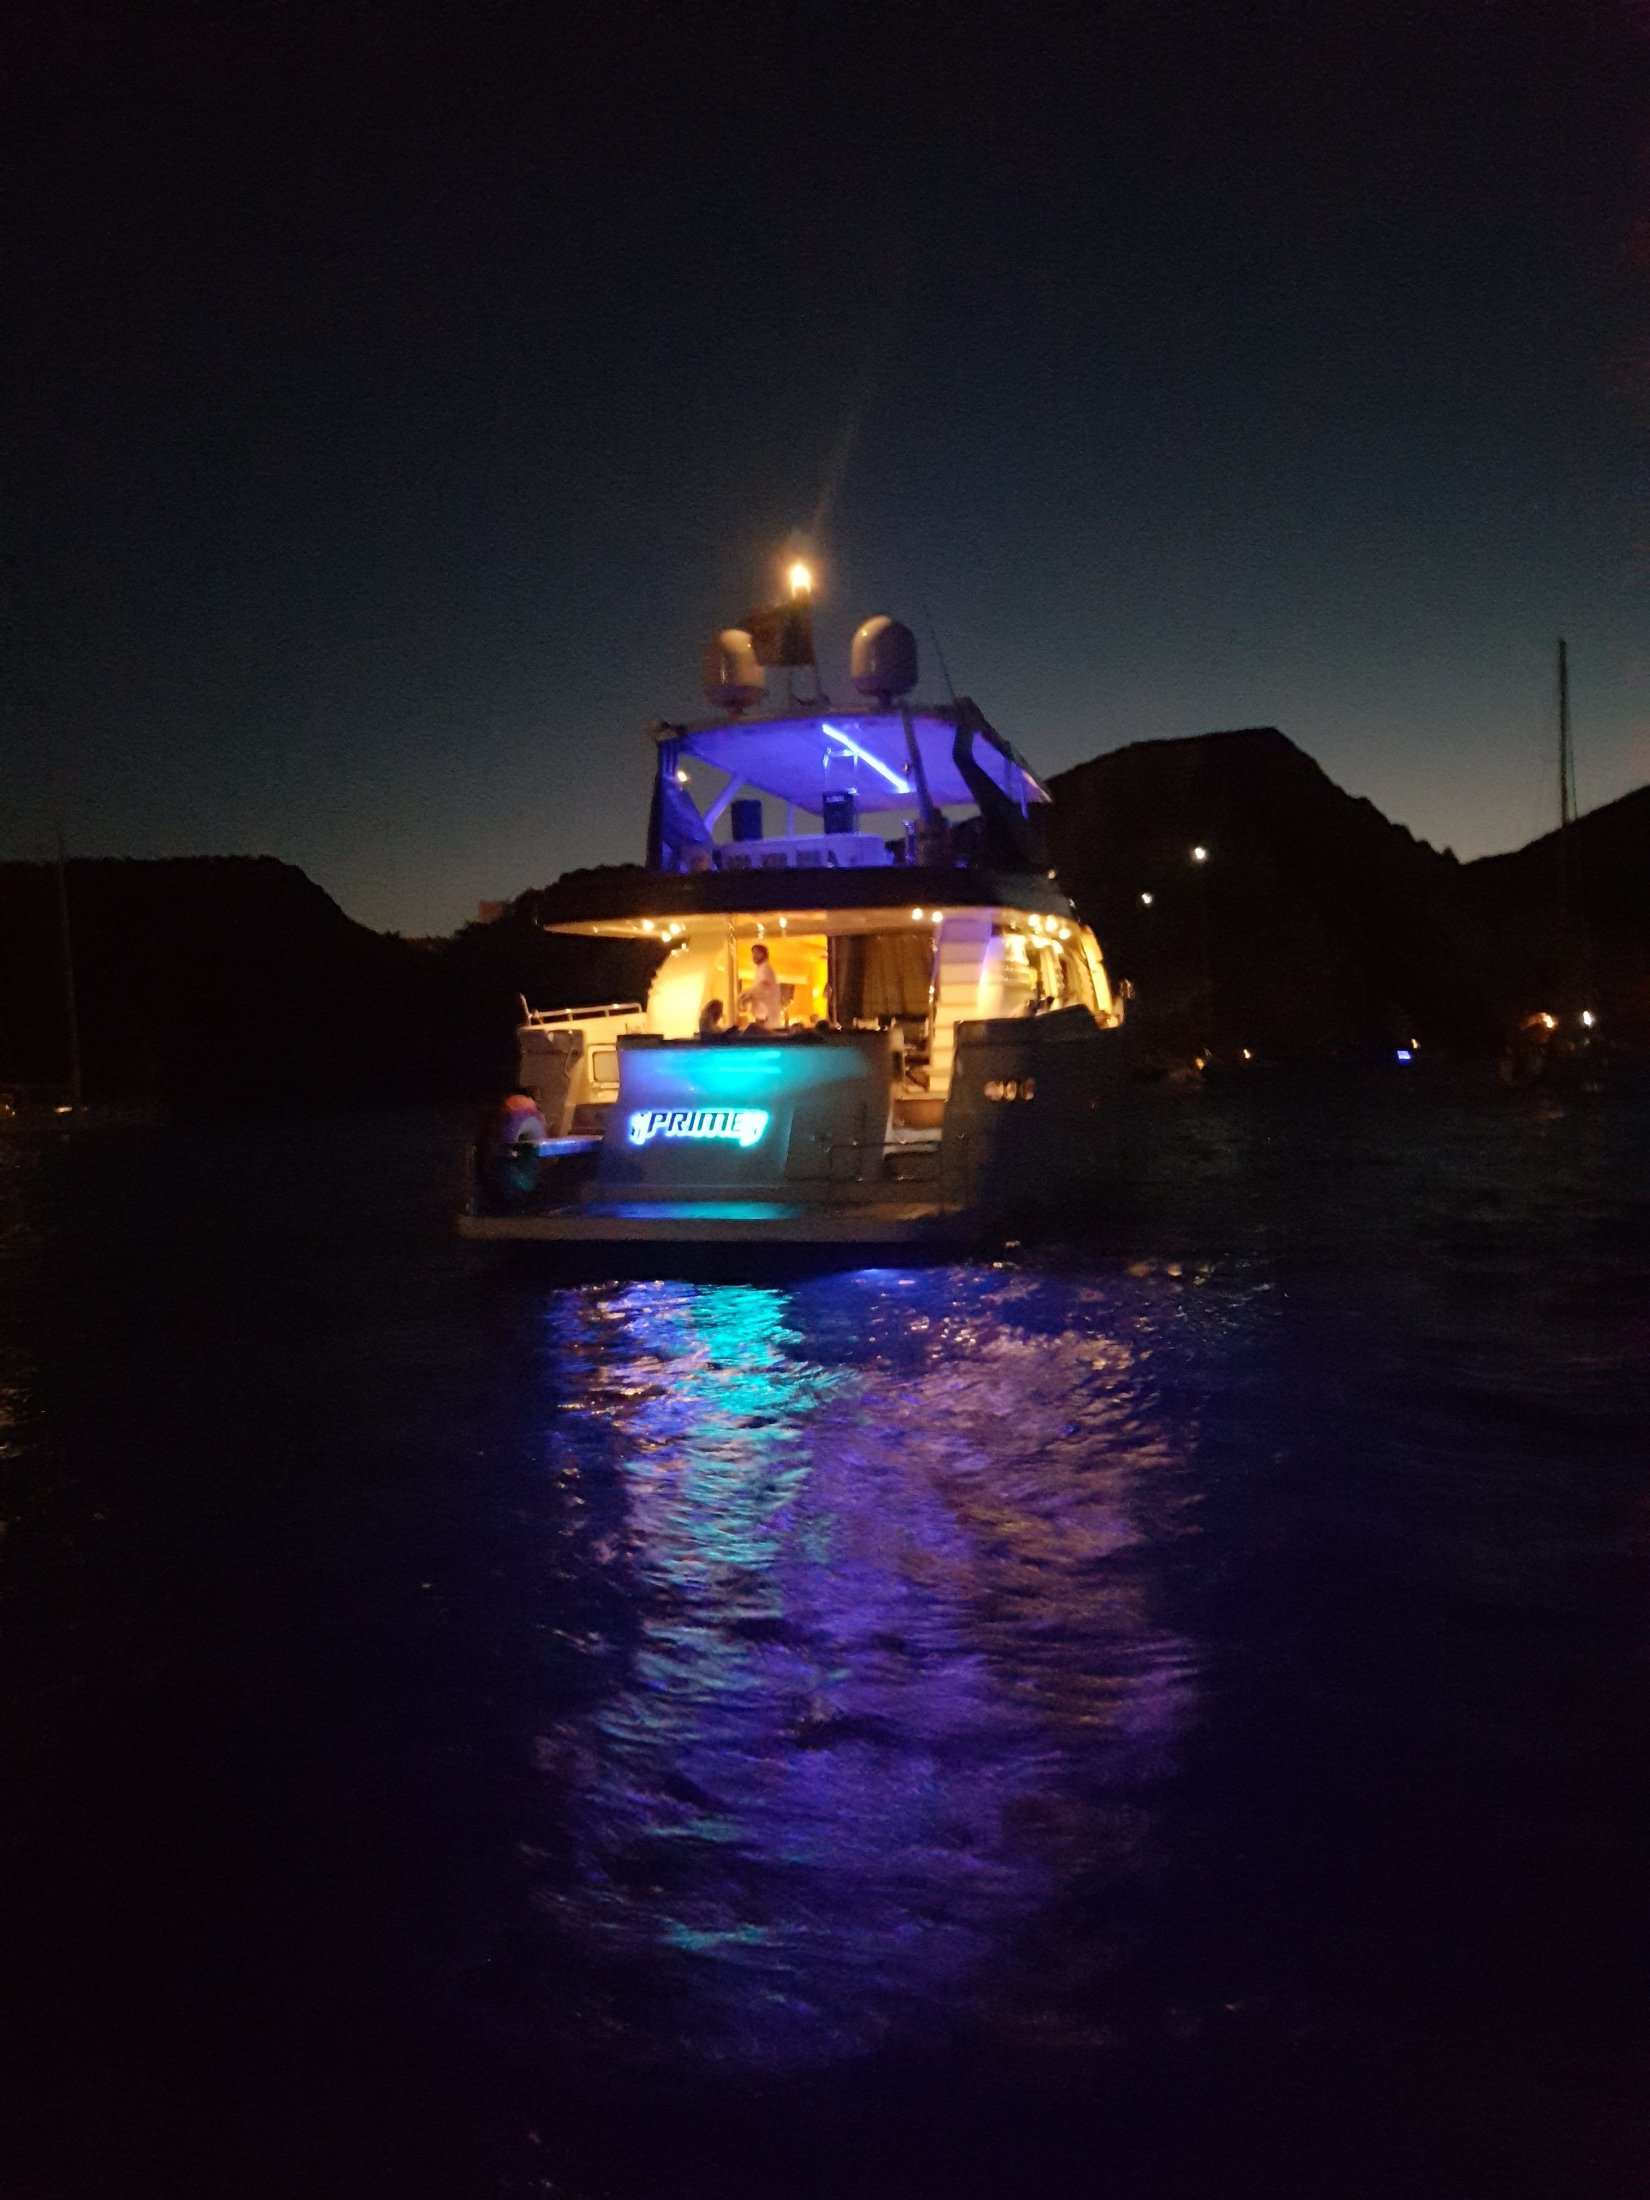 Charter-yacht-prime-party-night-e1515584583693